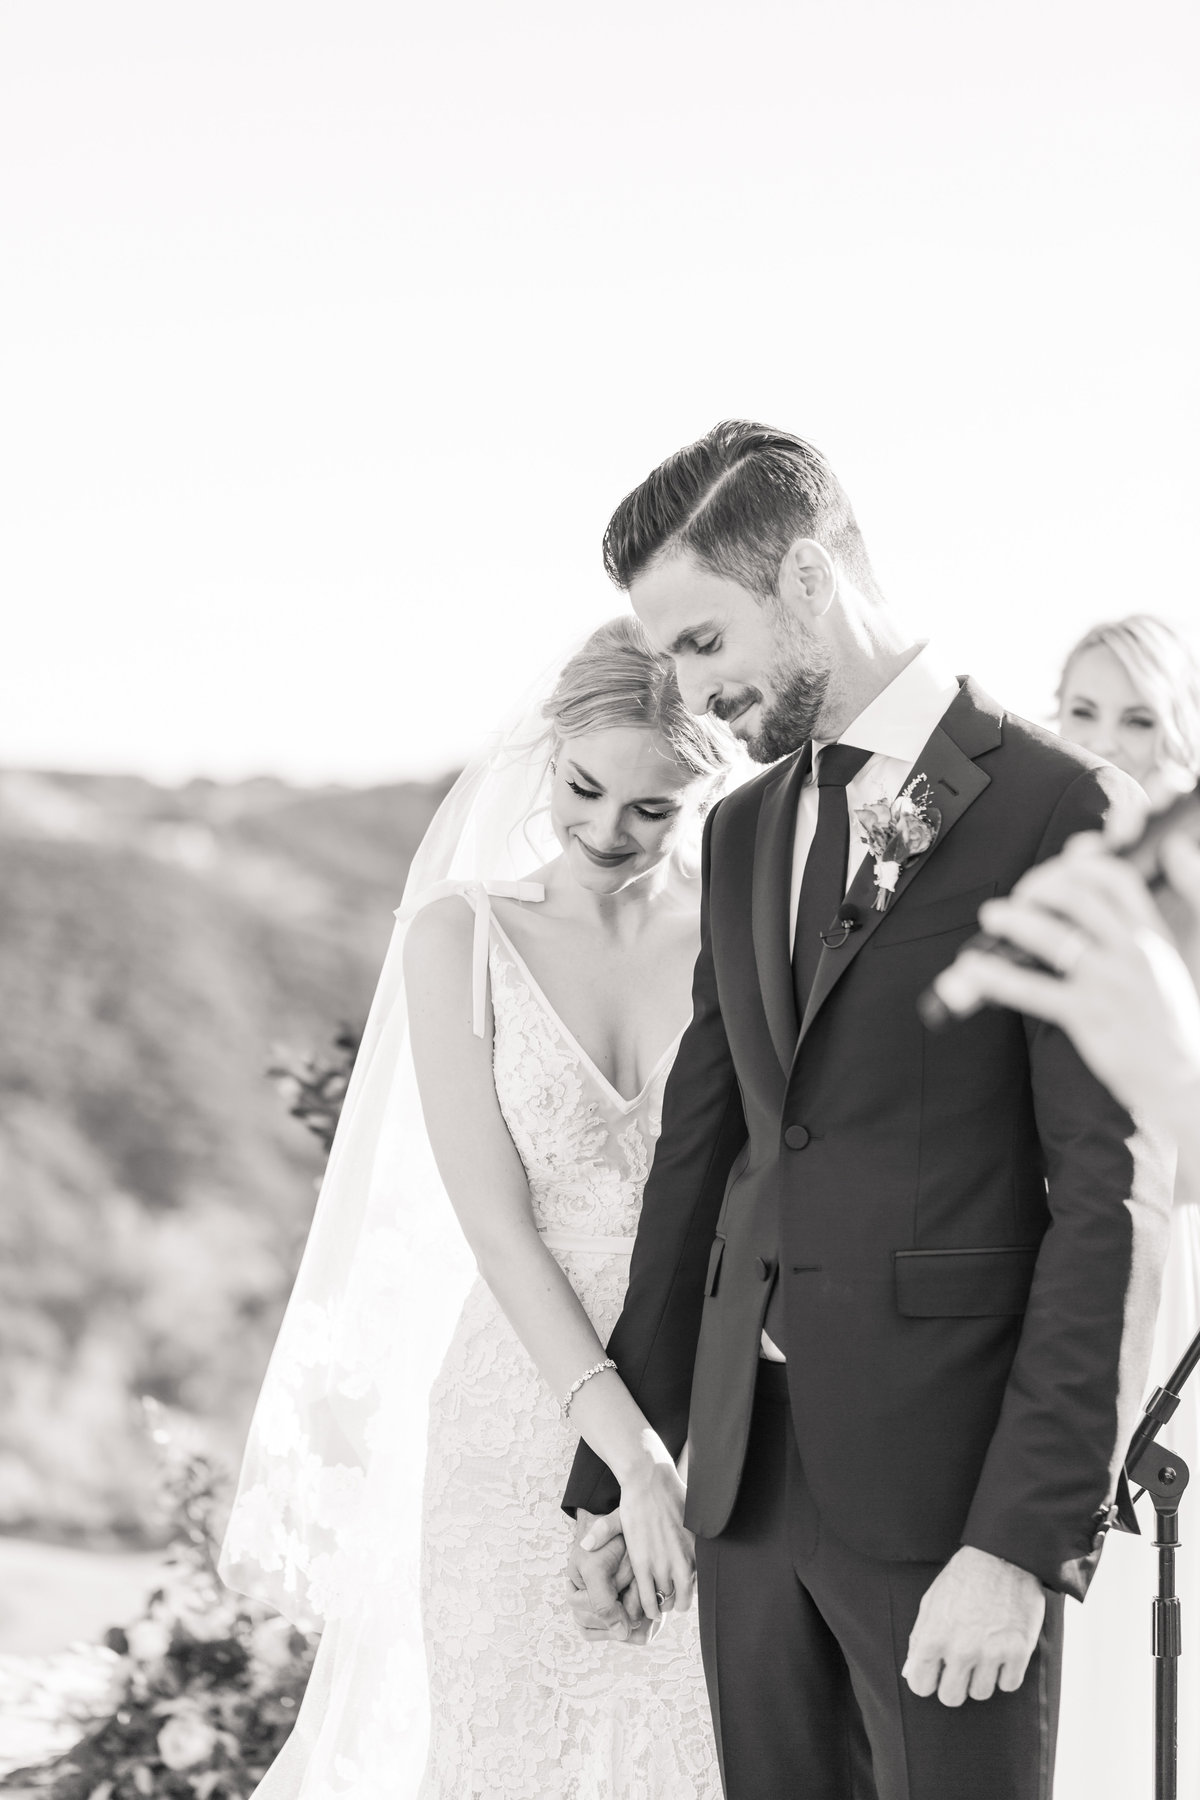 Malibu_Rocky_Oaks_Wedding_Inbal_Dror_Valorie_Darling_Photography - 78 of 160